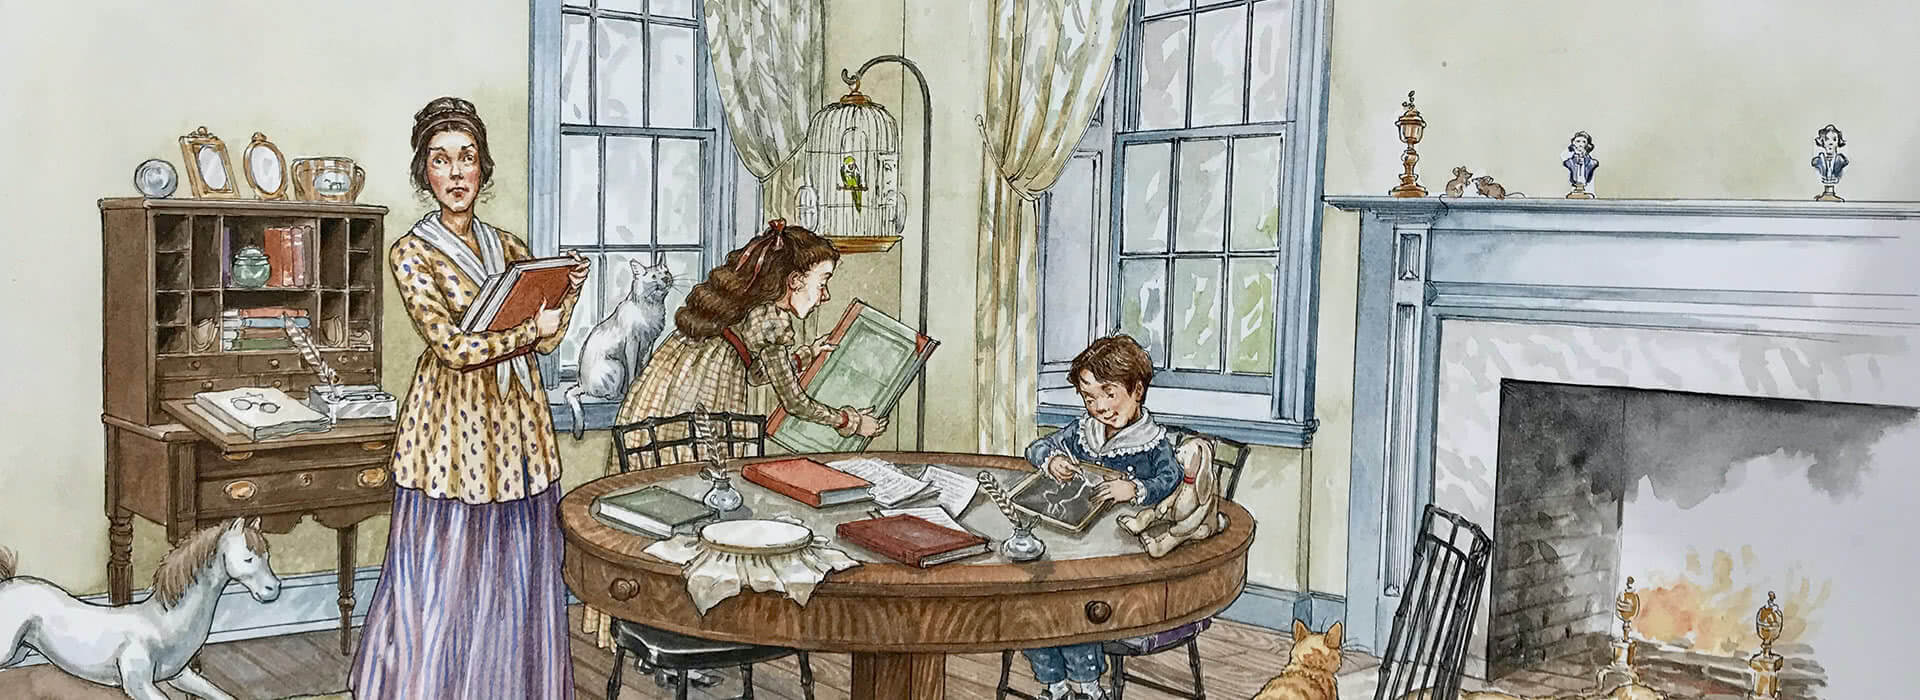 Book illustrating showing teacher and children in a room working on school-work